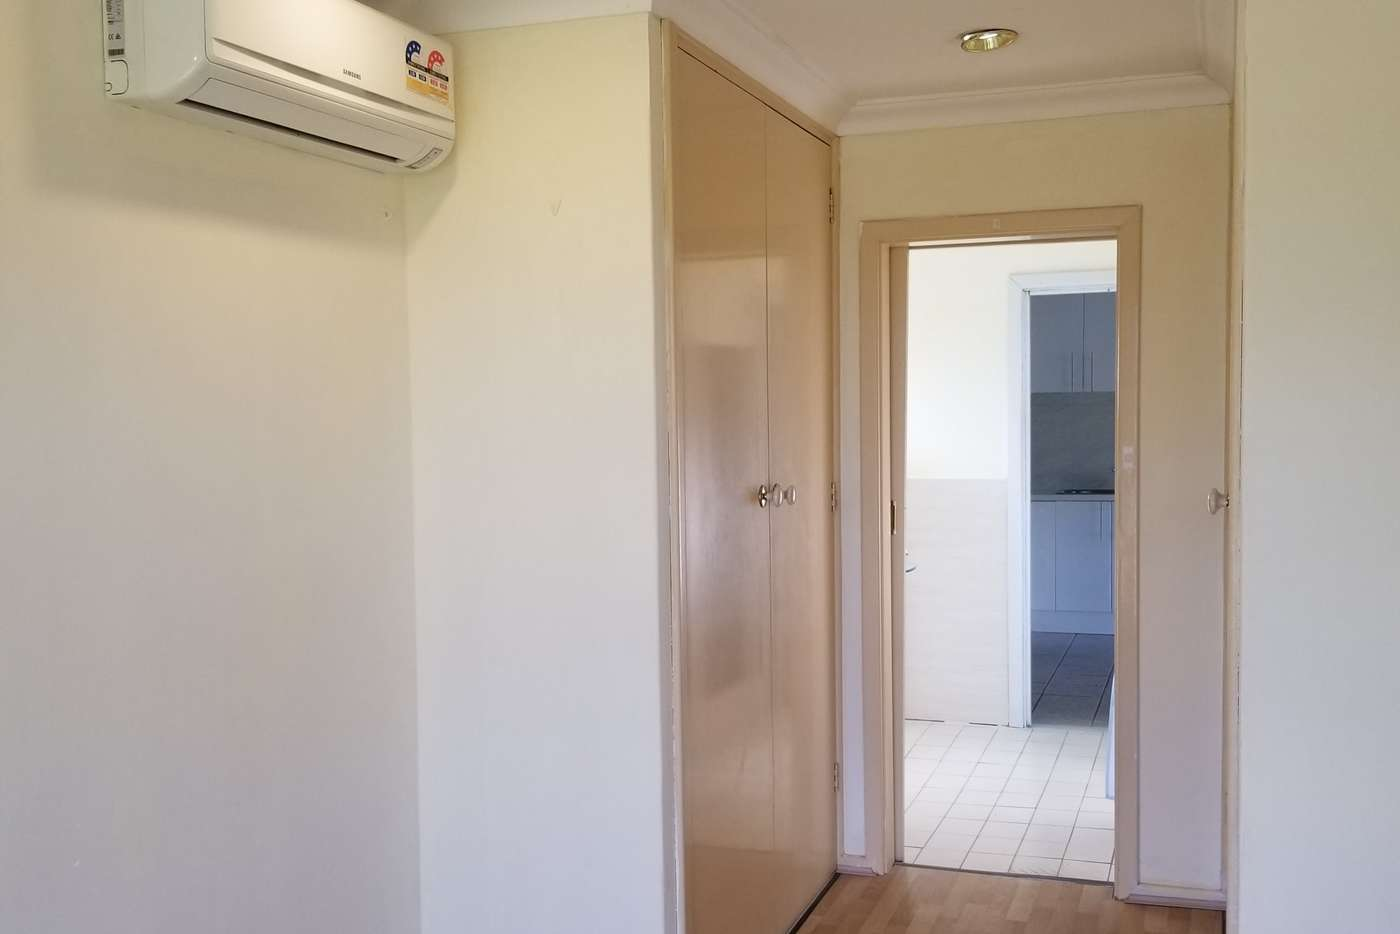 Sixth view of Homely house listing, 63 Fitzgerald Road, Morley WA 6062